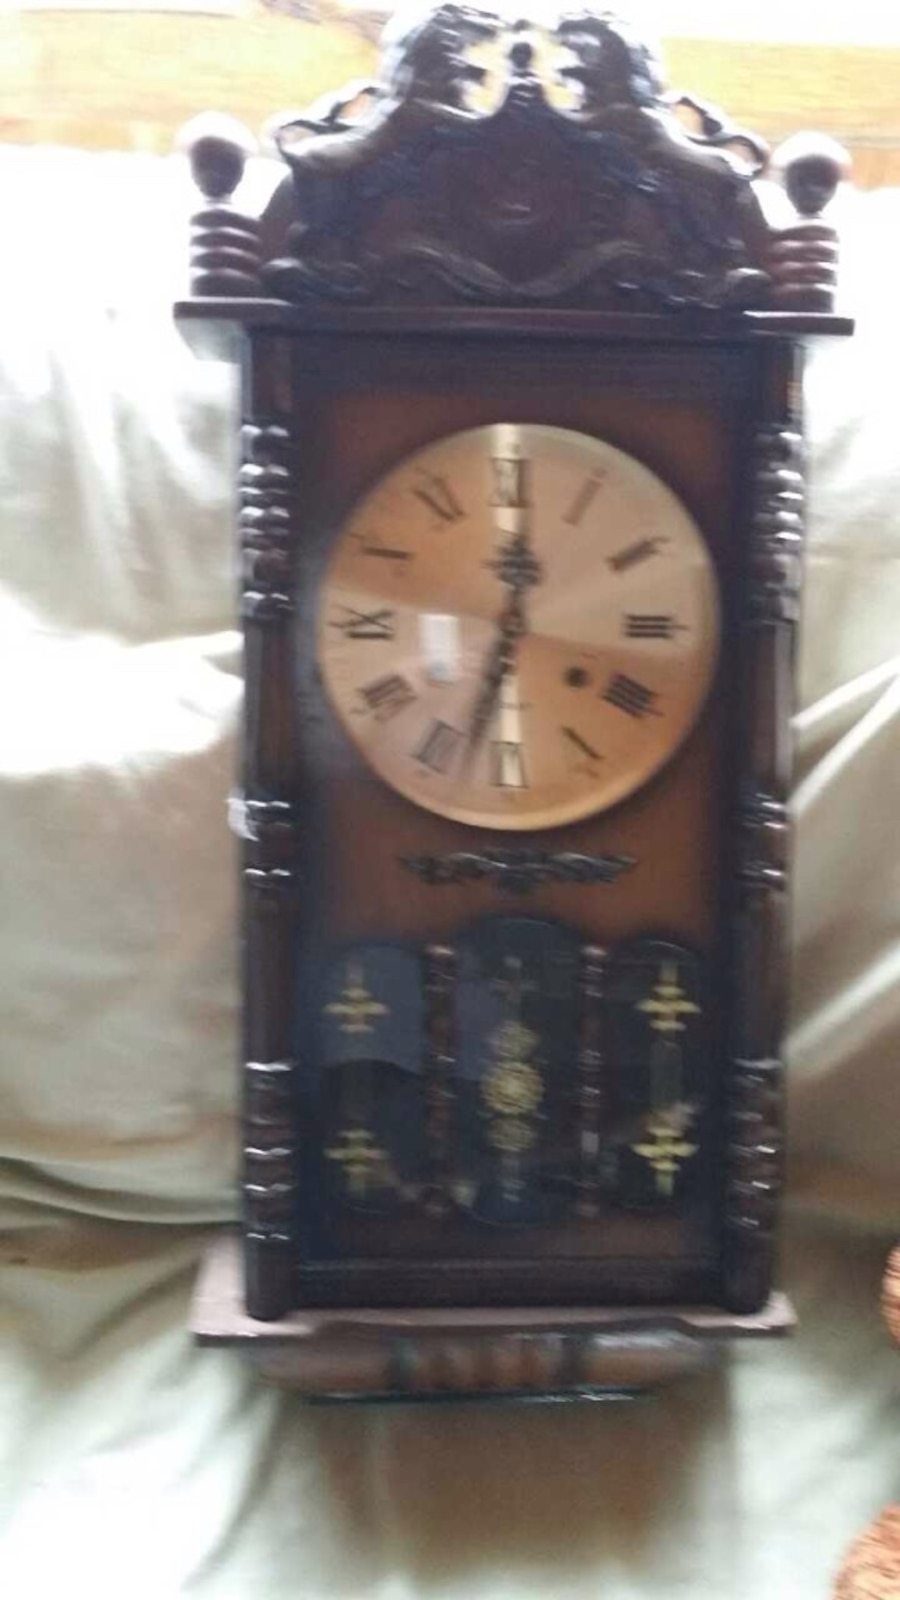 Sony 31 day wall grandfather clock in kennerdell letgo 31 day wall grandfather clock 100 send more info amipublicfo Image collections